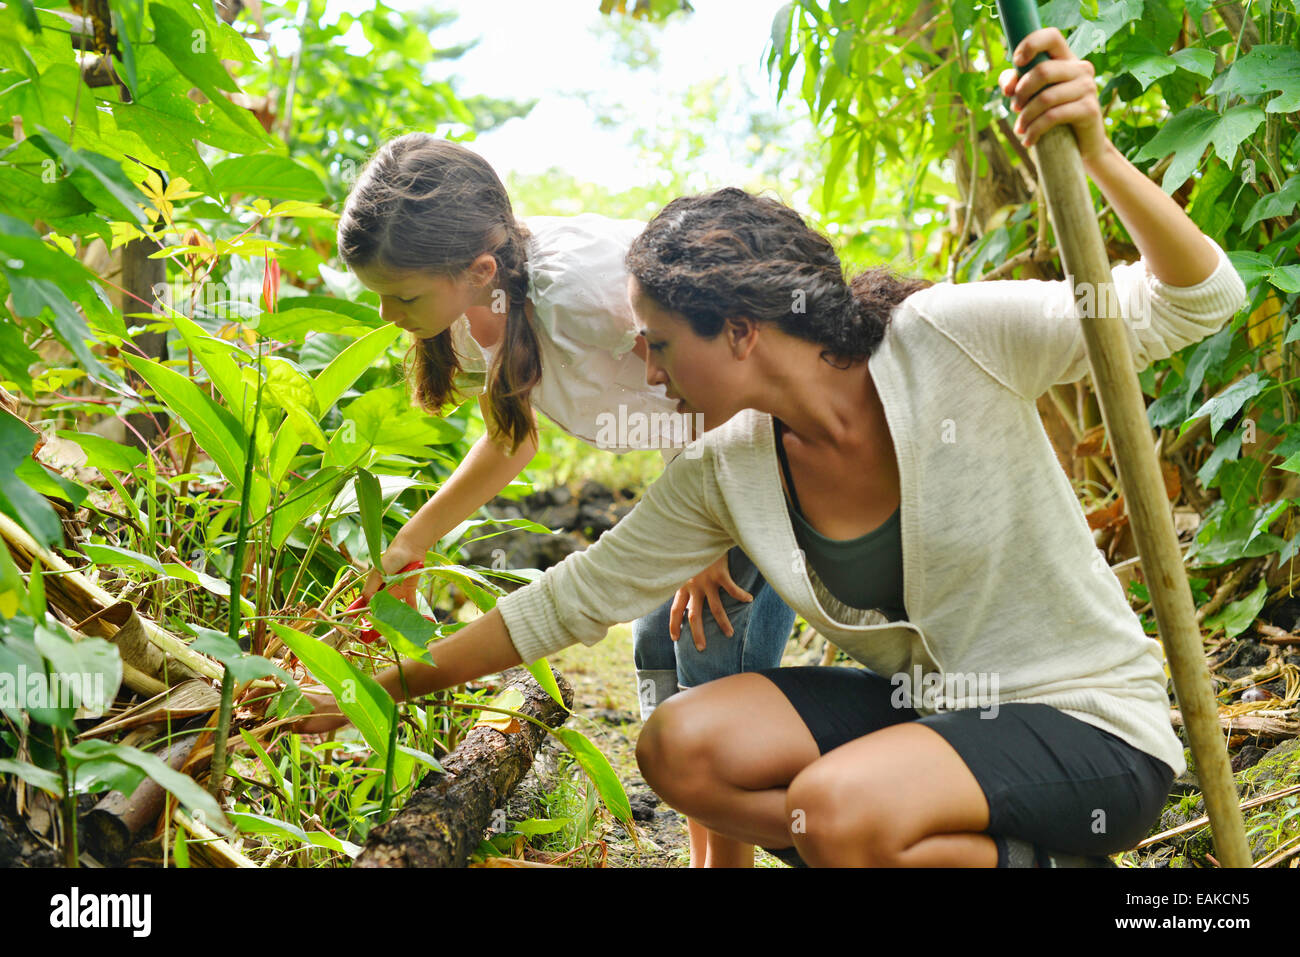 Femme et fille l'inspection des usines au jardin Photo Stock